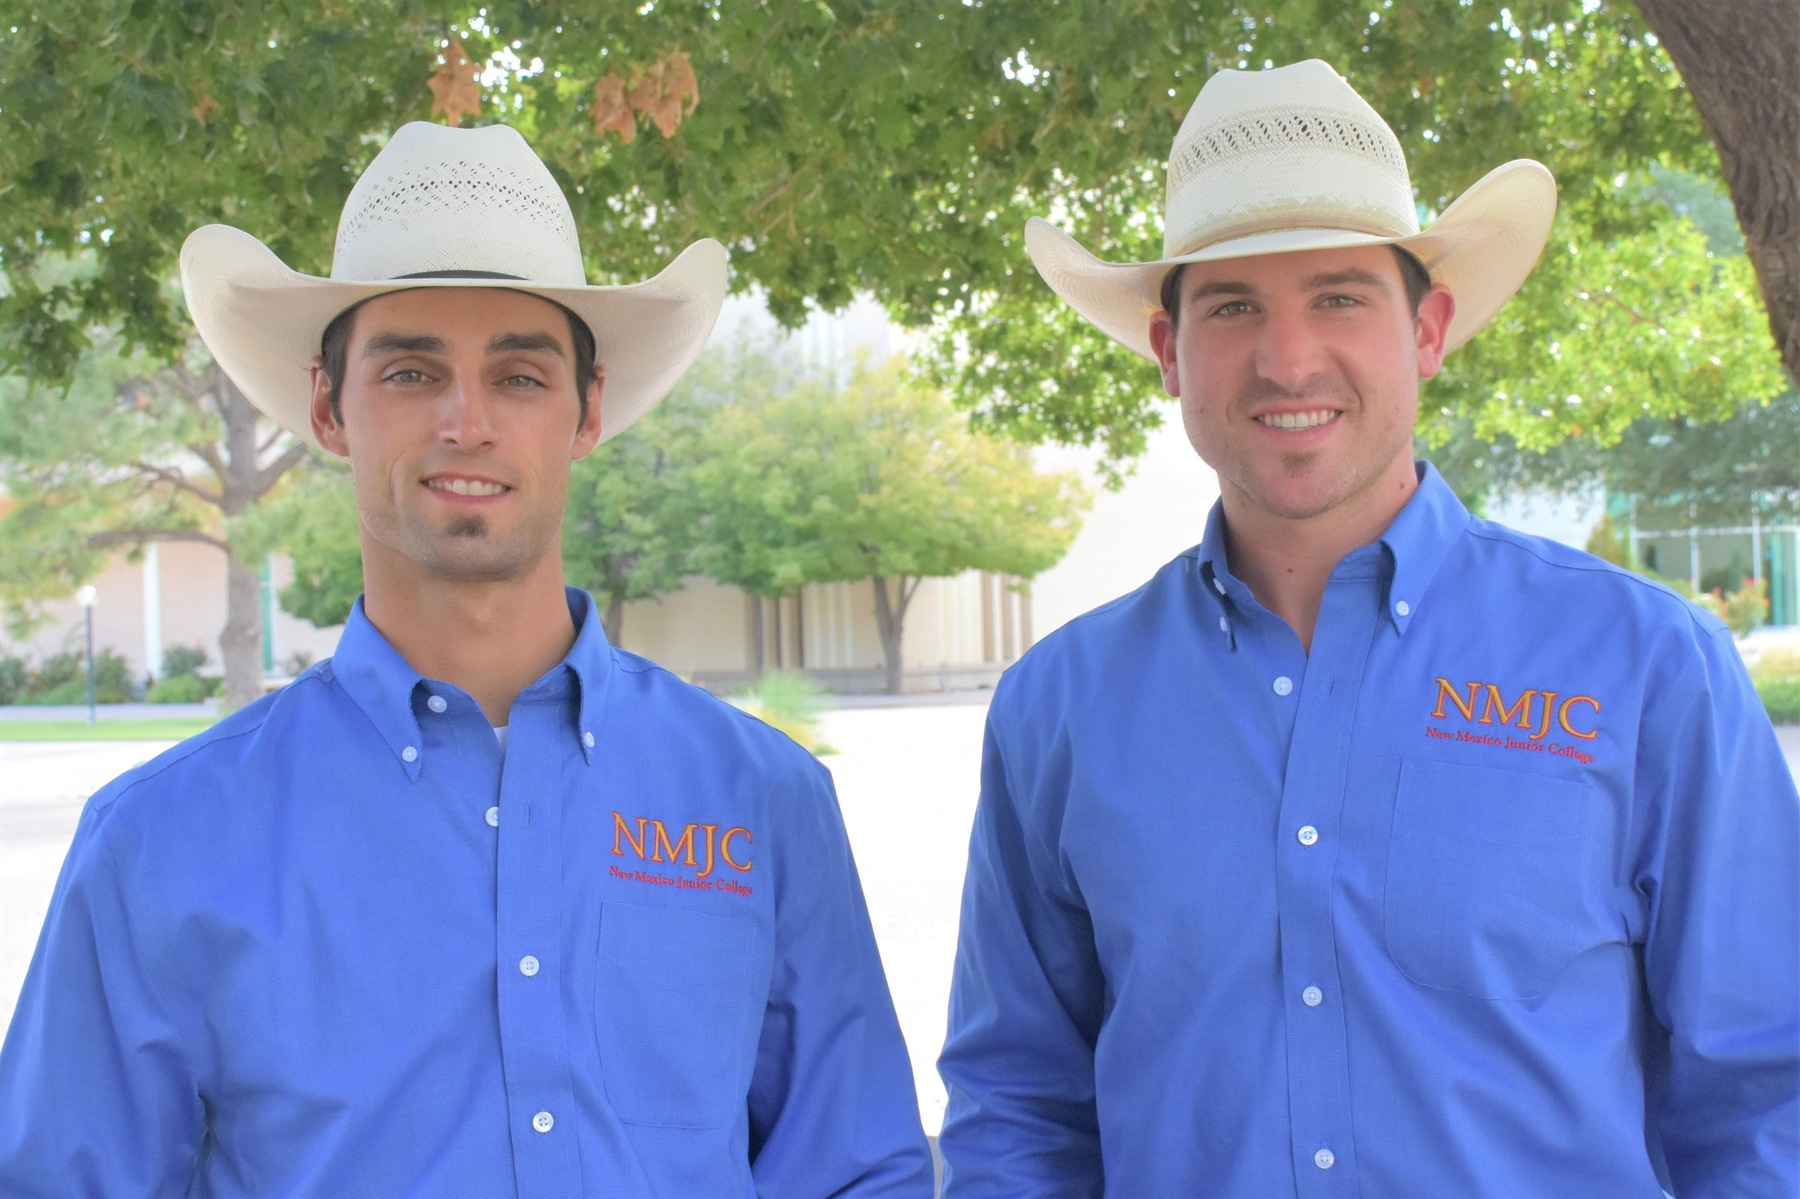 NMJC HIRES CO-COACHES FOR ITS CHAMPIONSHIP RODEO TEAM